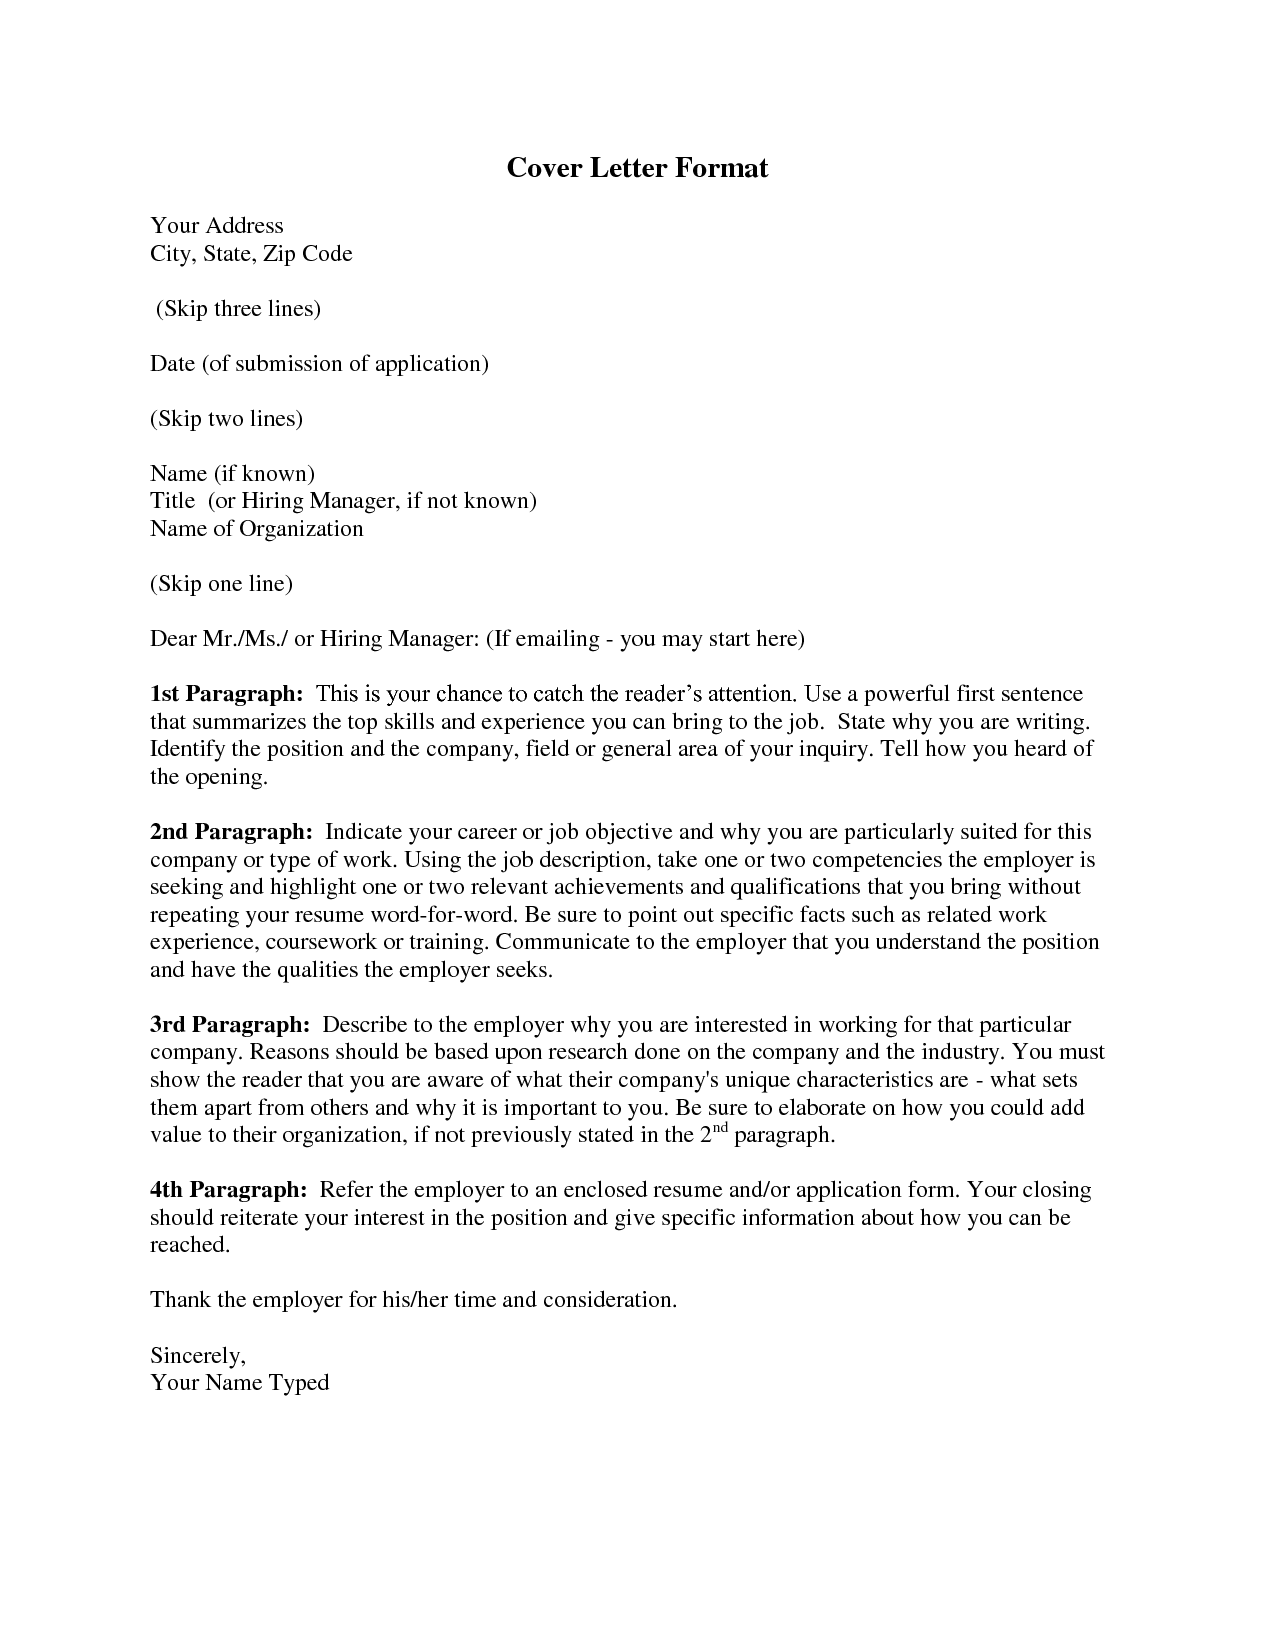 Cover Letter Format For Personalizing Your Cover Letter Template Job ...